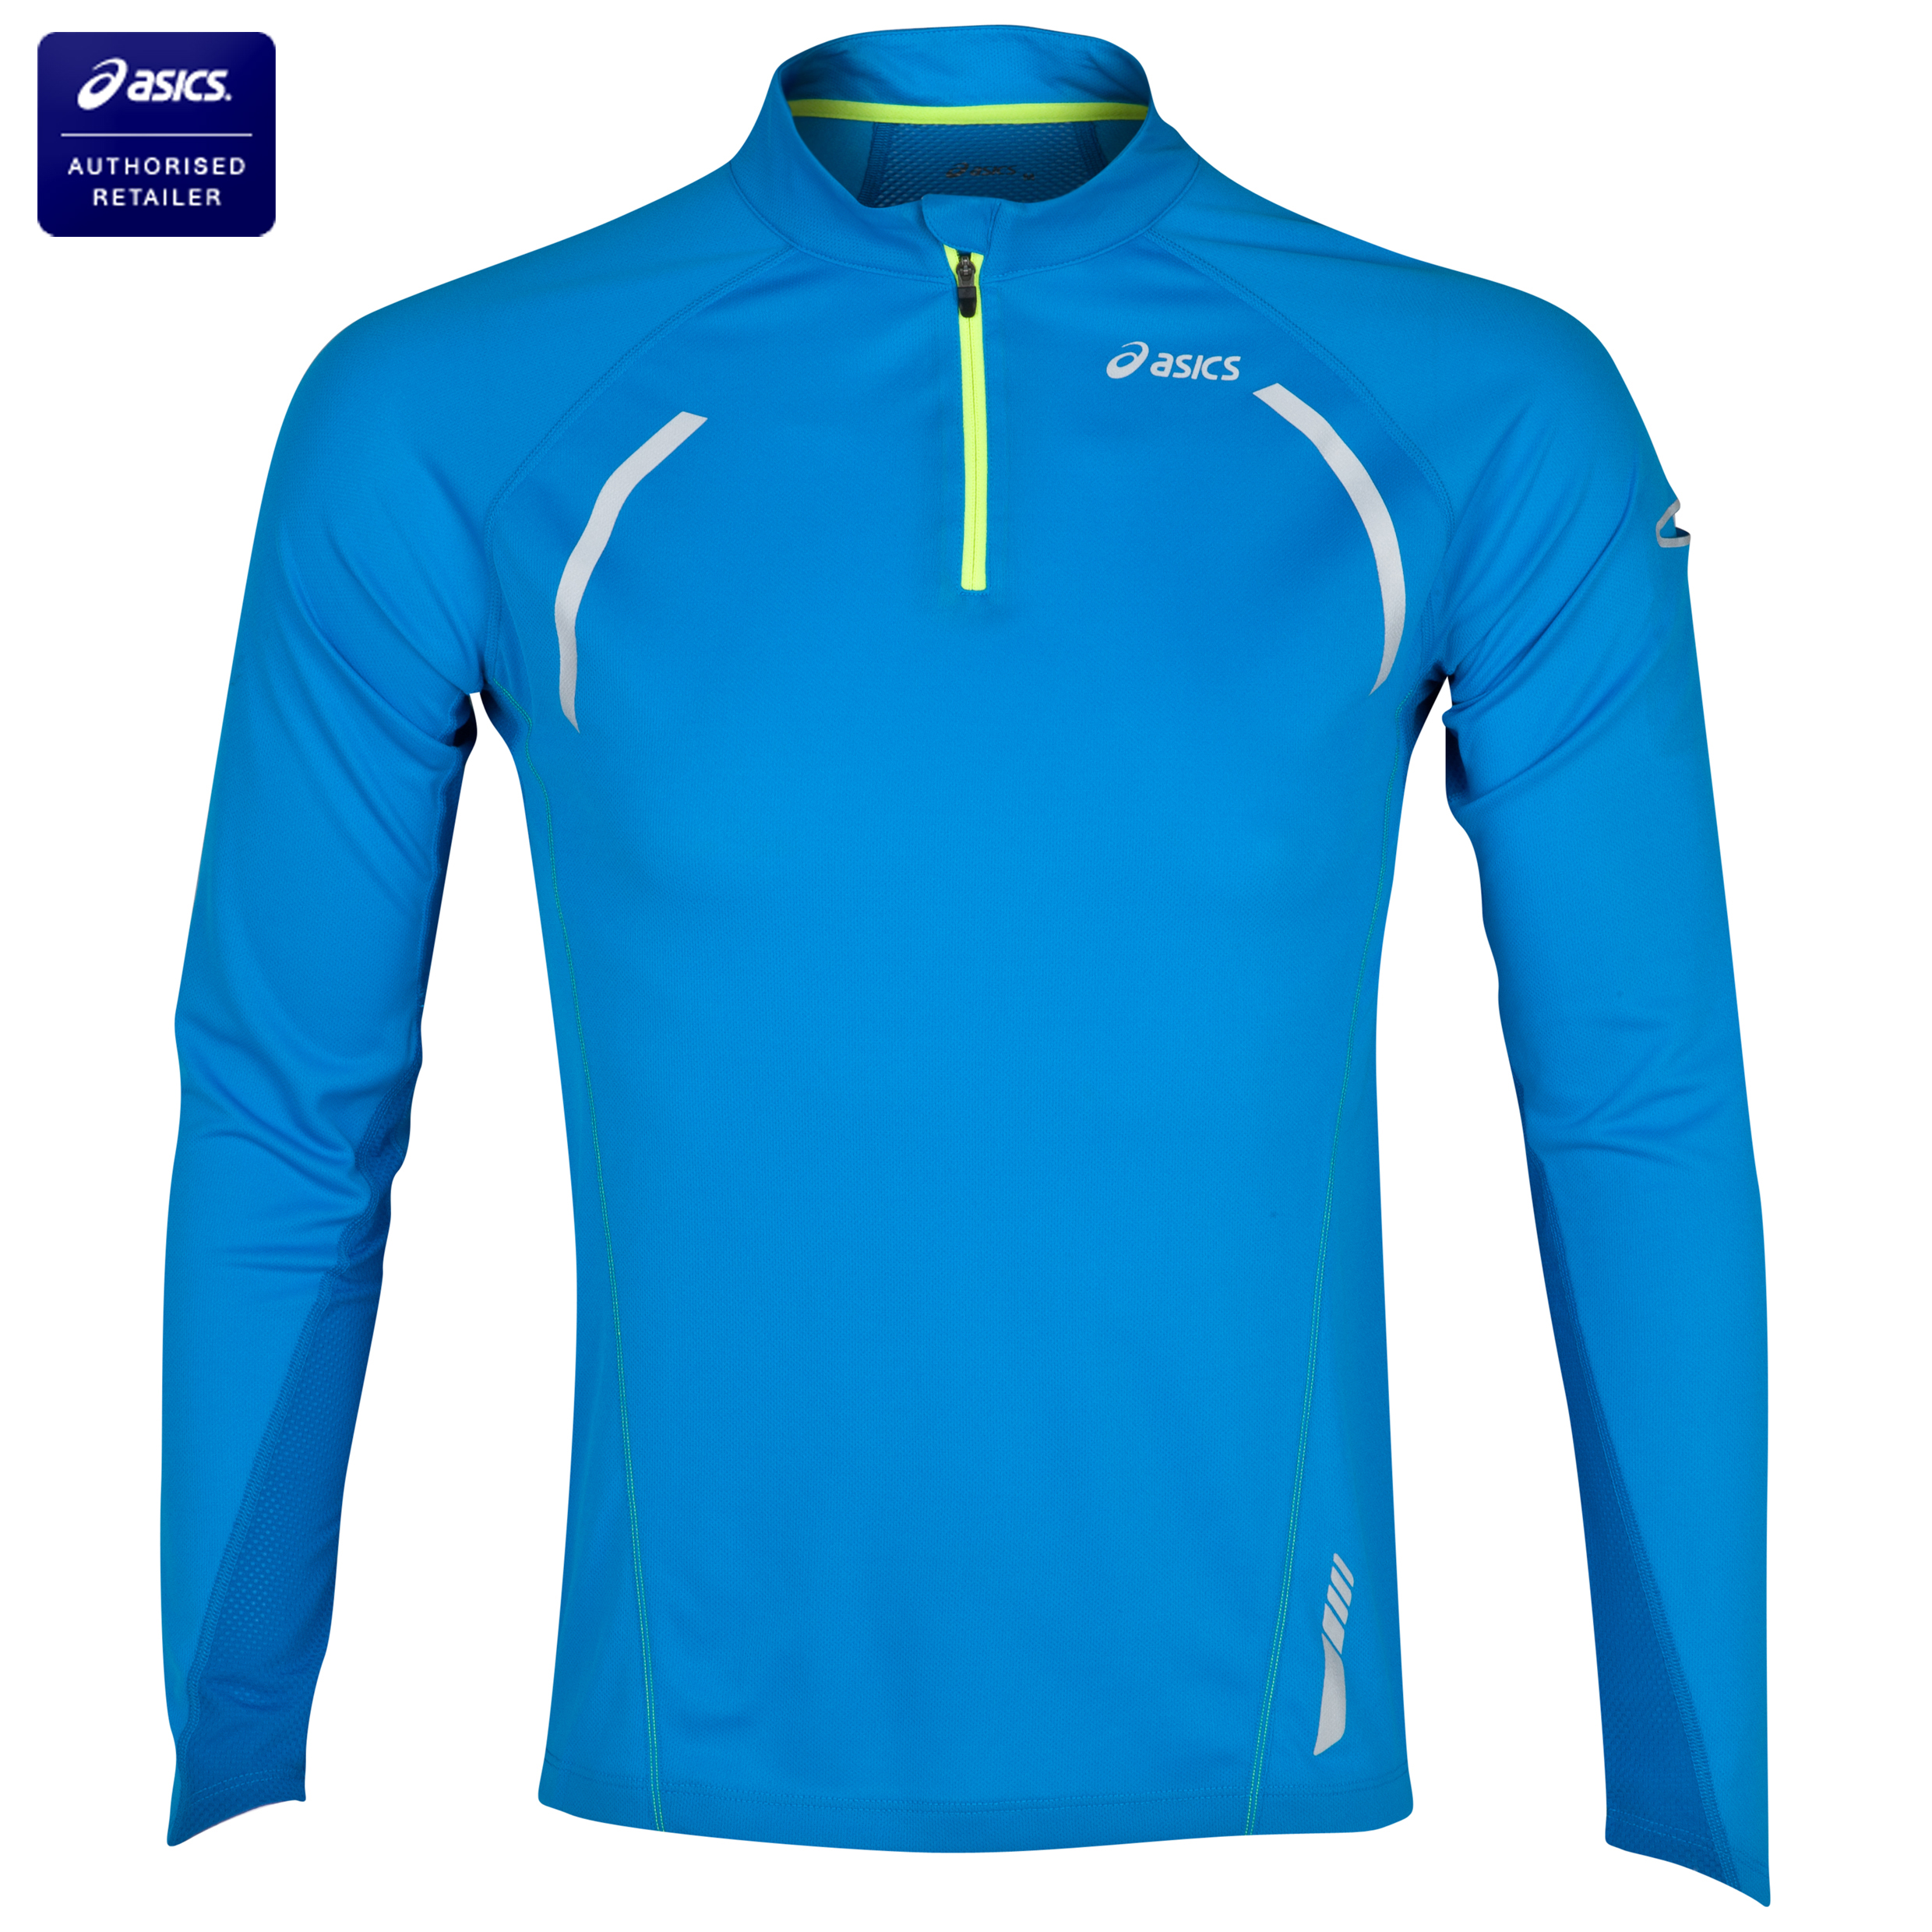 Asics Long Sleeve Half Zip Top - Surf Blue